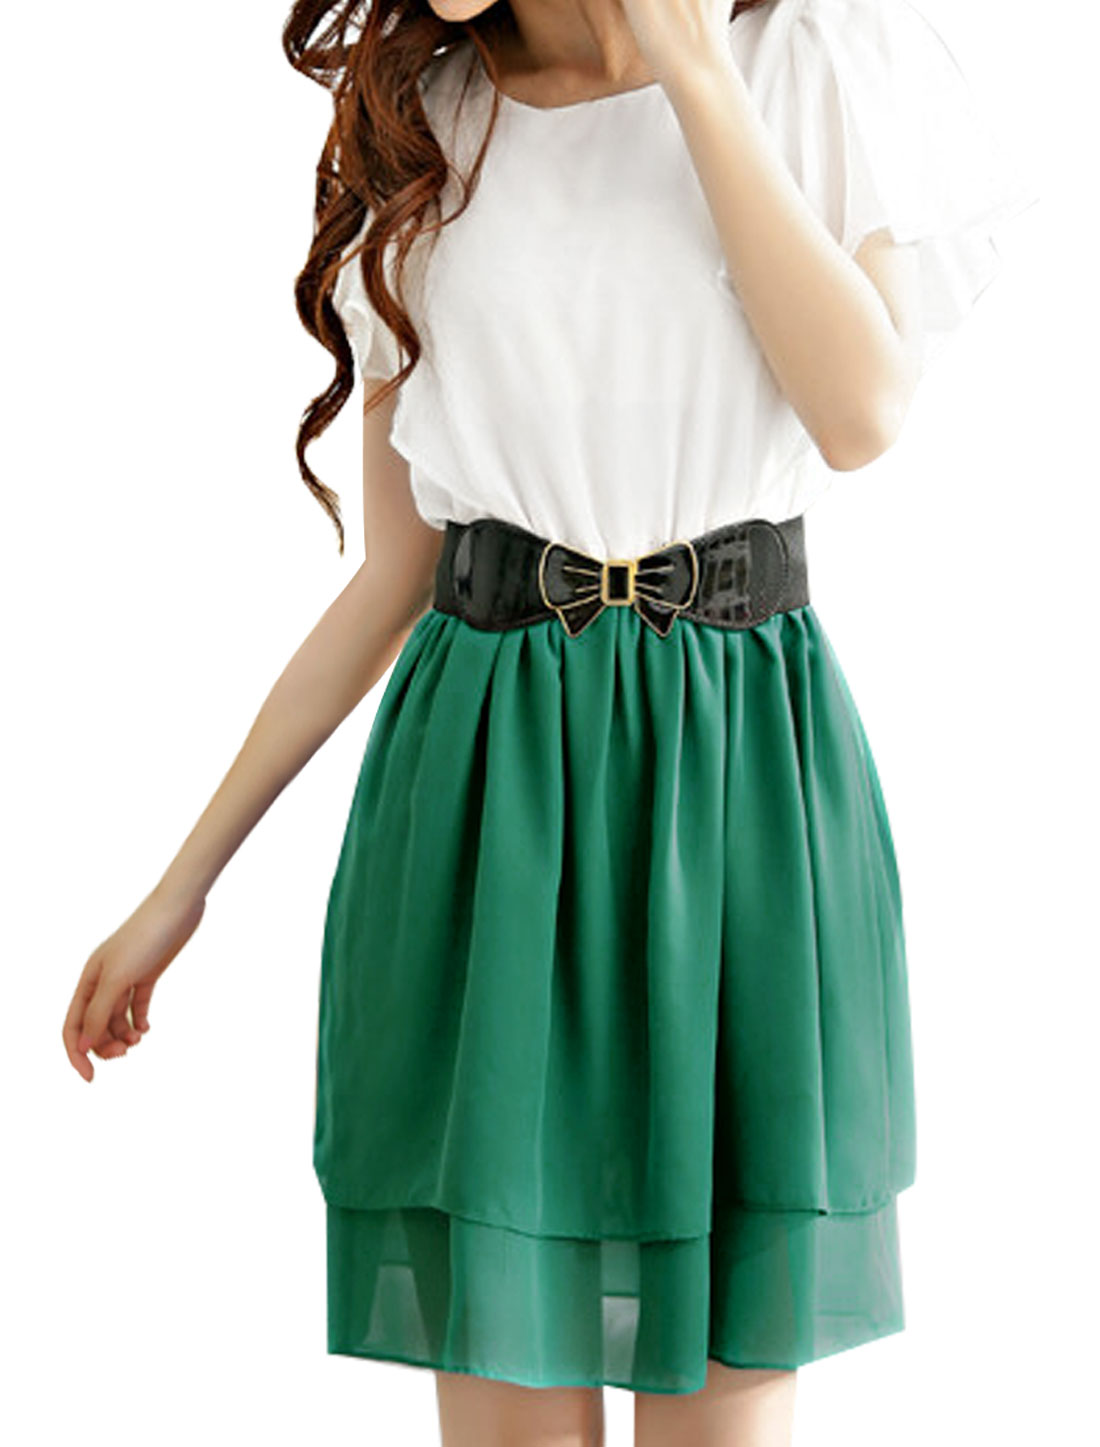 Women Butterfly Sleeves Contrast Color Chiffon Dress w Belt Dusty Green XS